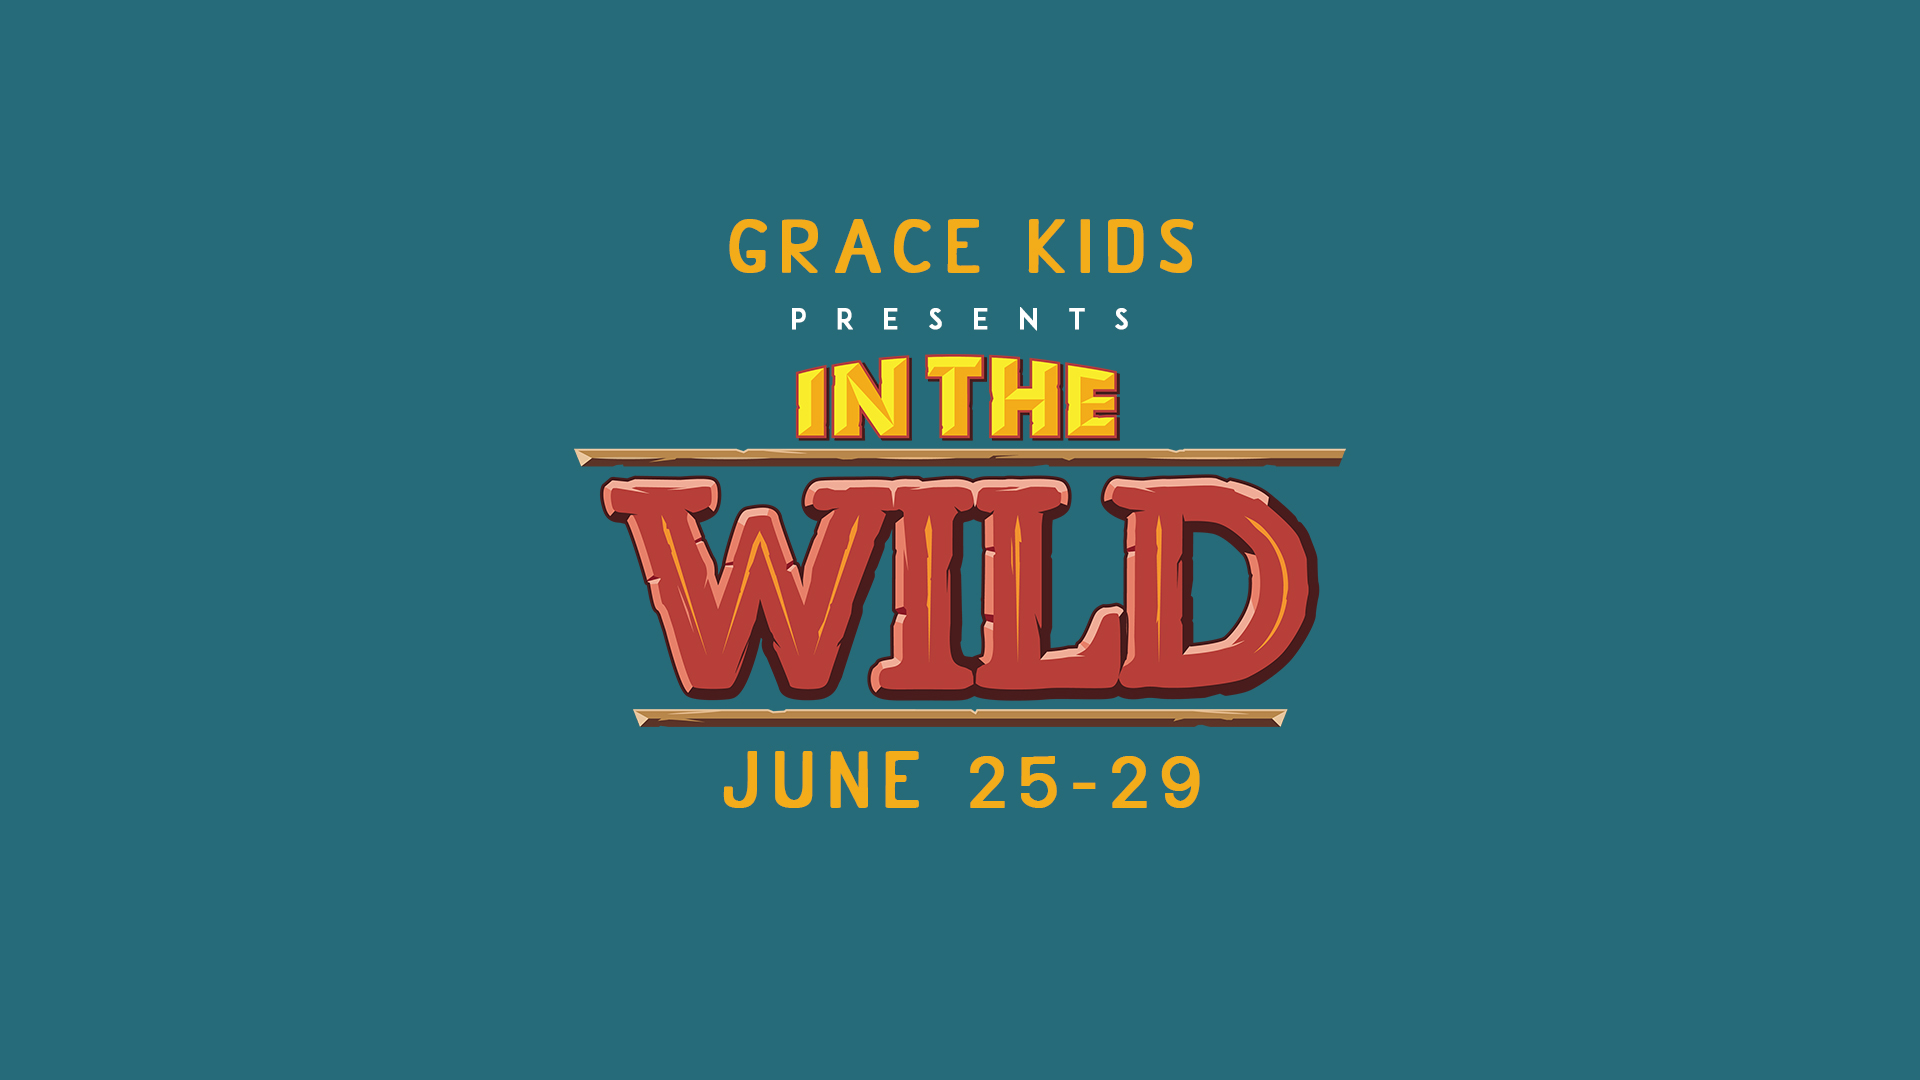 This VBS is going to be WILD! Grace Kids is hosting a 5-day expedition into the Arctic, into the rainforest, the mountains, and the bog lands to celebrate some of God's fascinating wildlife while having amazing encounters with Jesus!  Sign up today! Registration closes June 18.